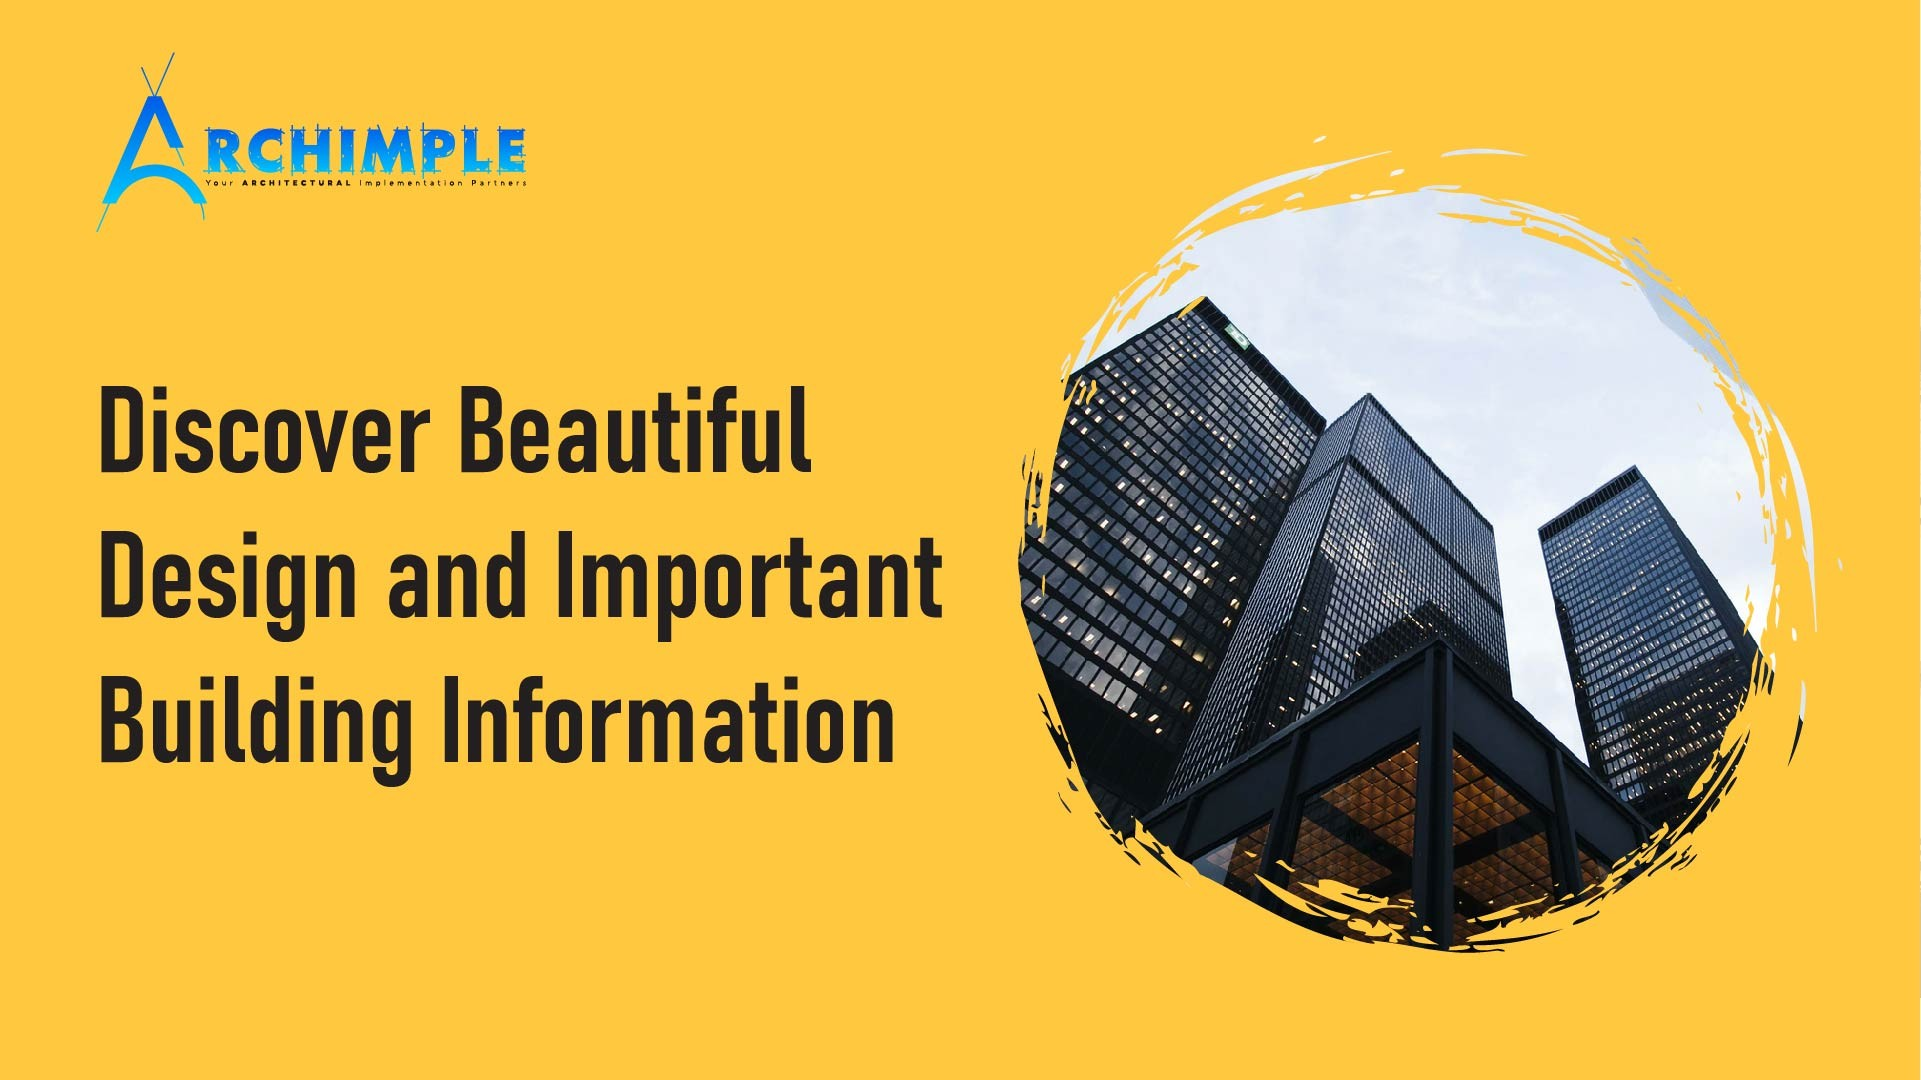 Discover Beautiful Design and Important Building Information